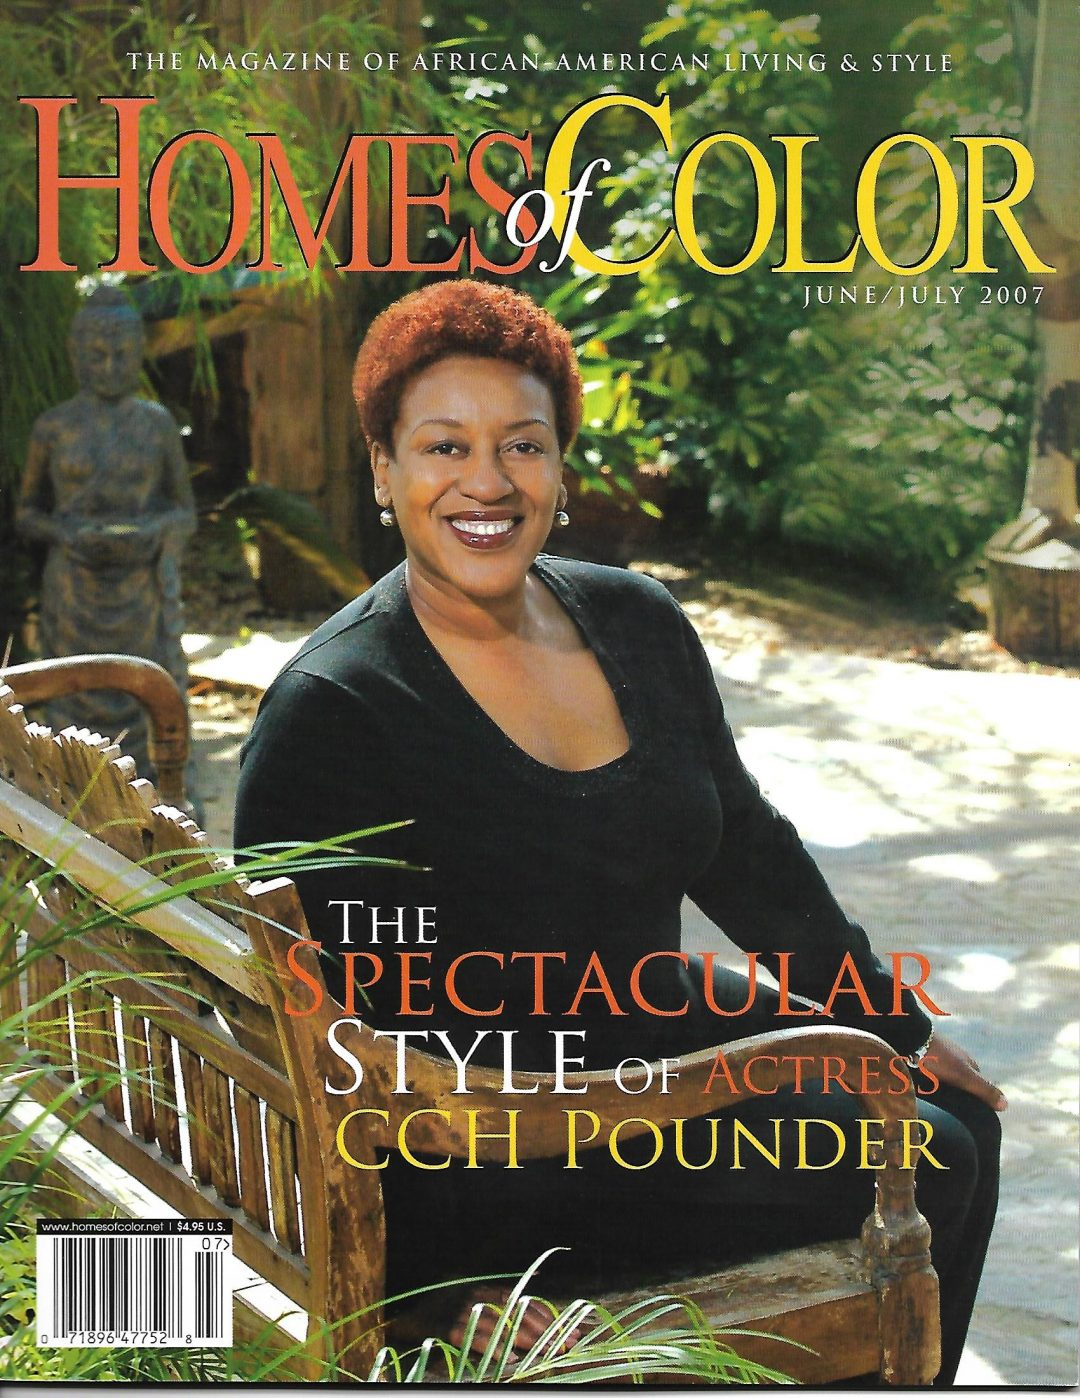 Homes of Color: June/ July 2007